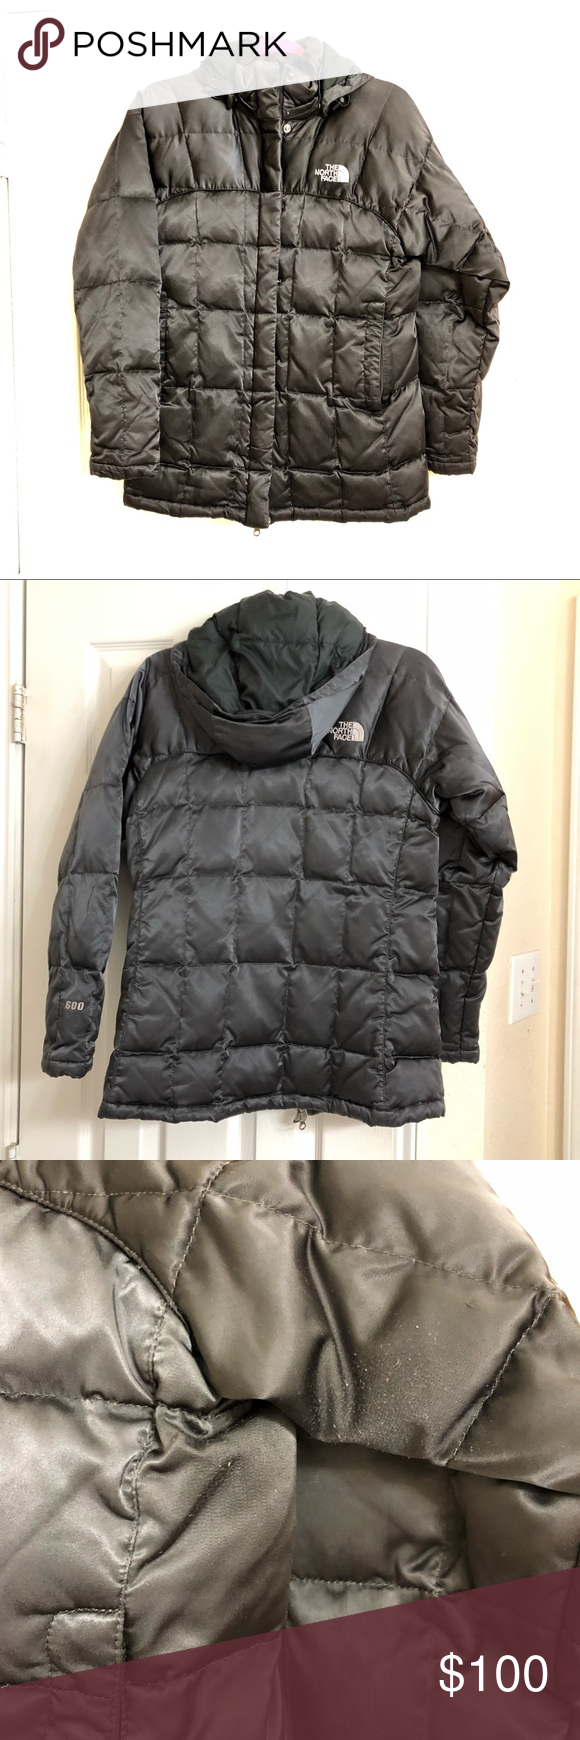 The North Face 600 Down puffer jacket hooded XS Down